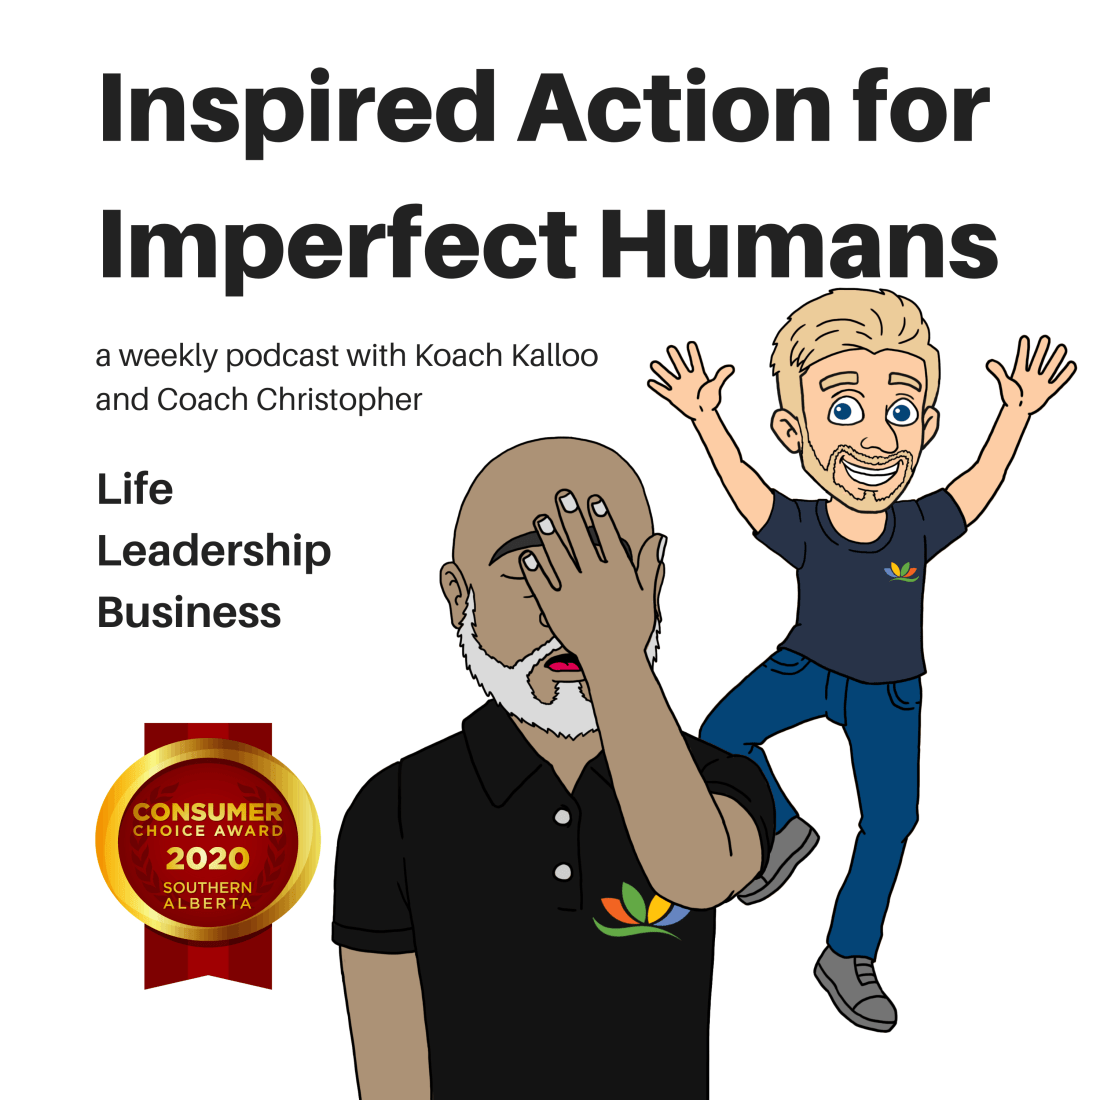 Image for Inspired Action for Imperfect Humans Podcast